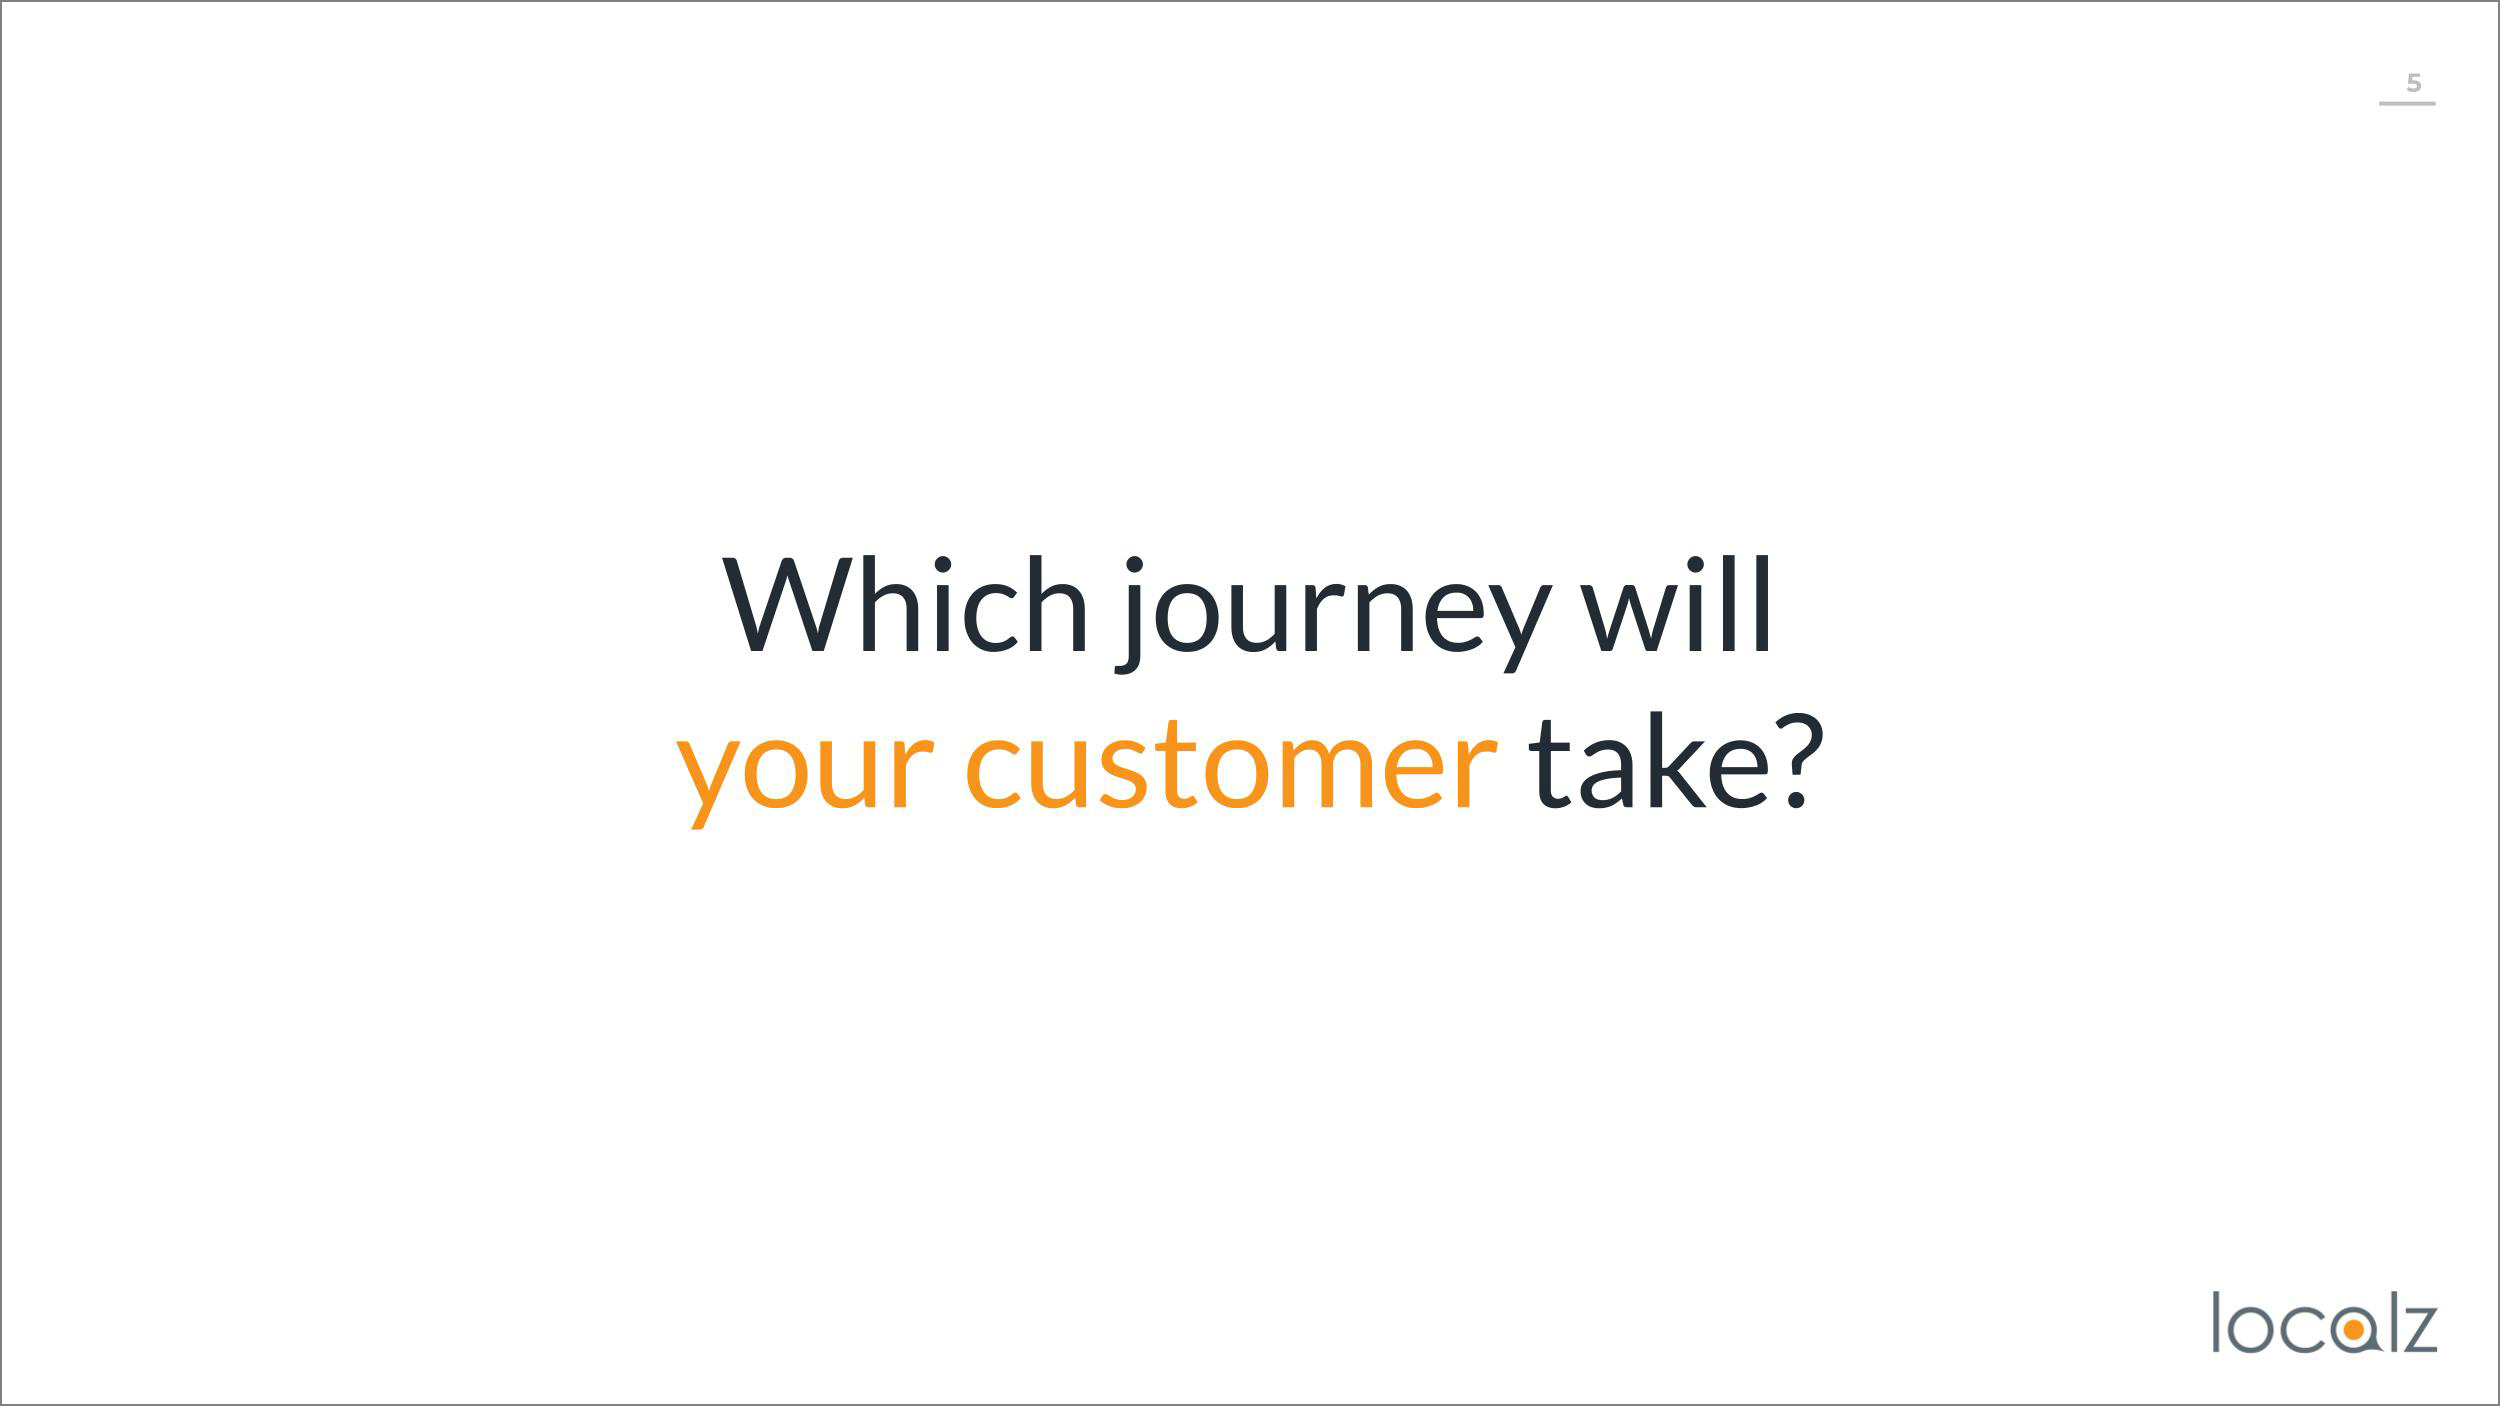 Which journey will your customer take?